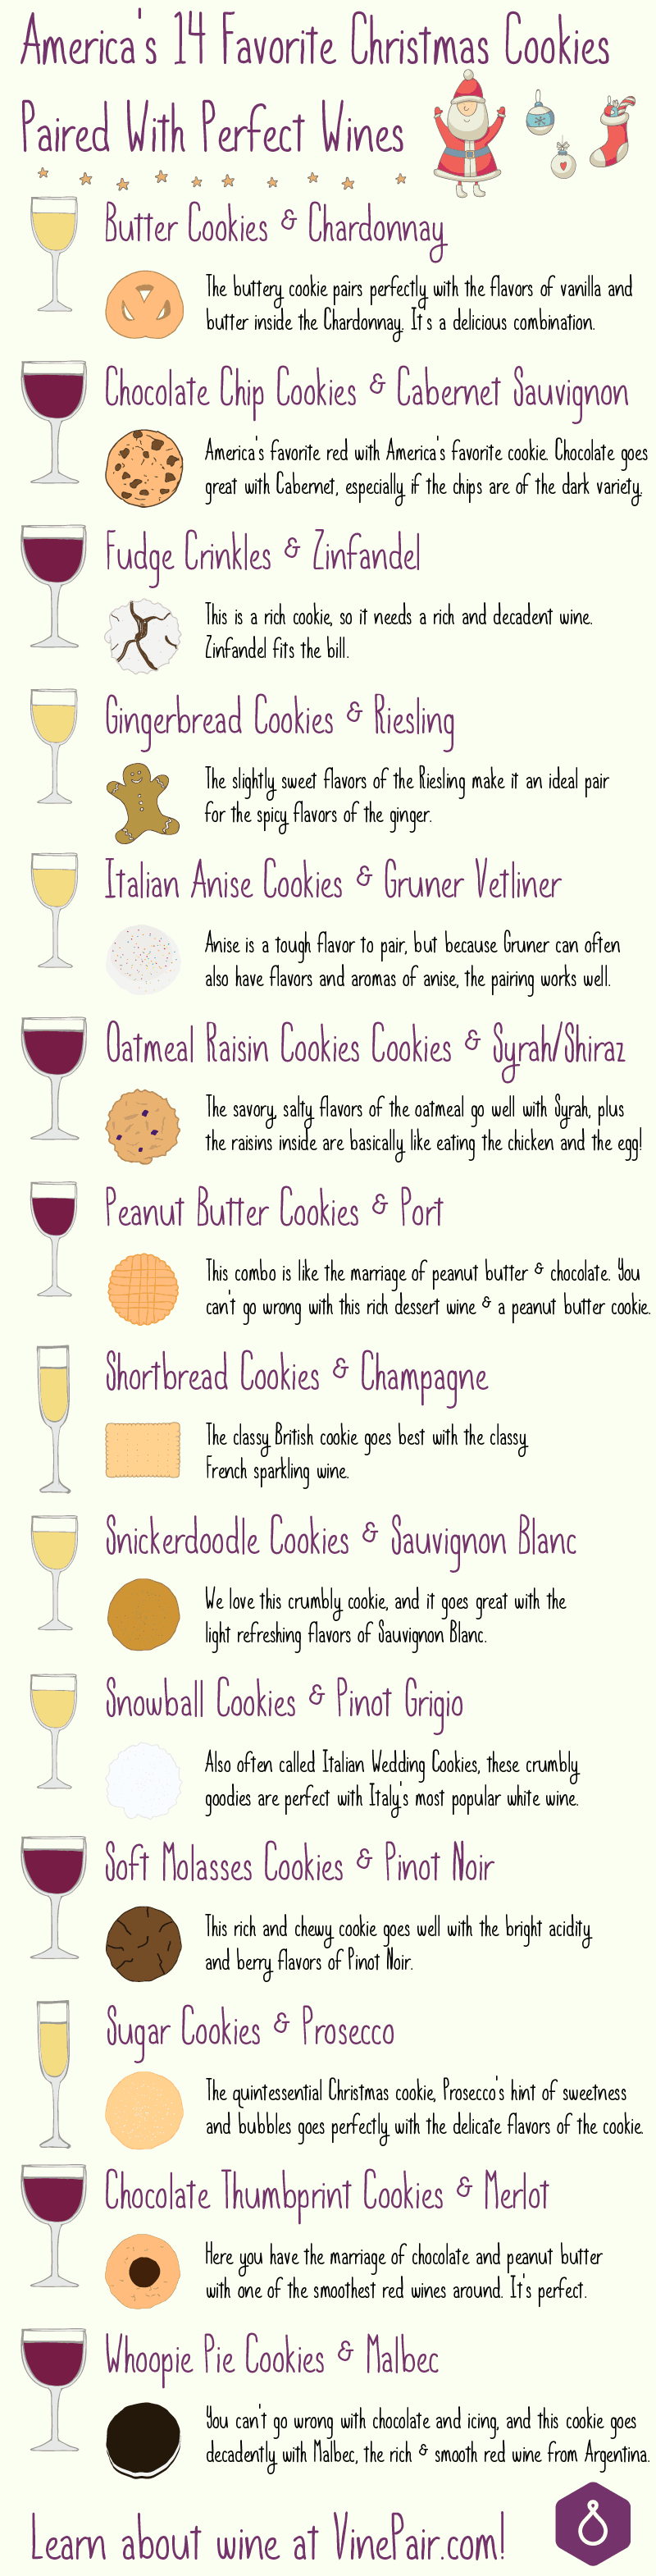 Christmas Cookies and Wine Pairings